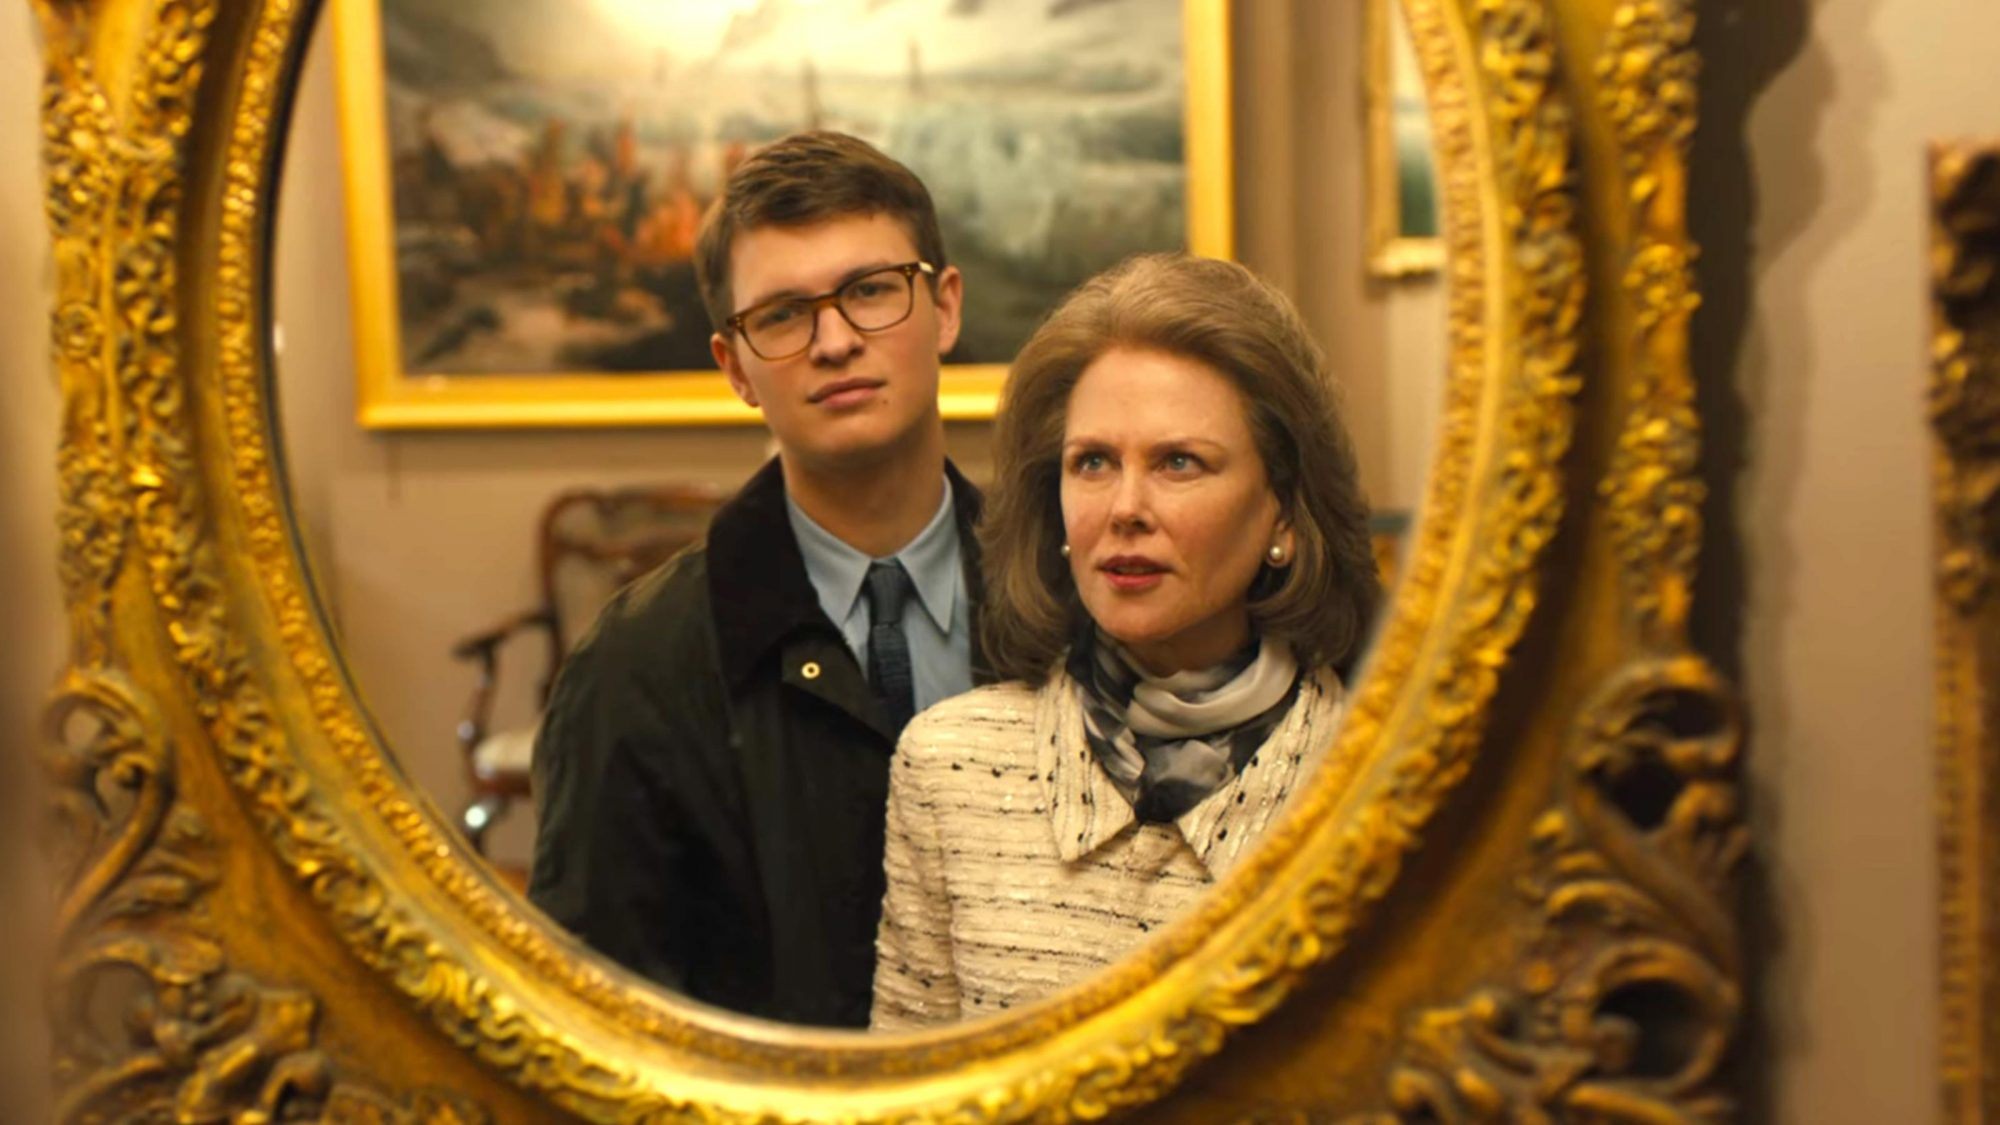 The Goldfinch (screen grab) Ansel Elgort and Nicole Kidman https://www.youtube.com/watch?v=NM8hLj_qz5c CR: Warner Bros. Pictures